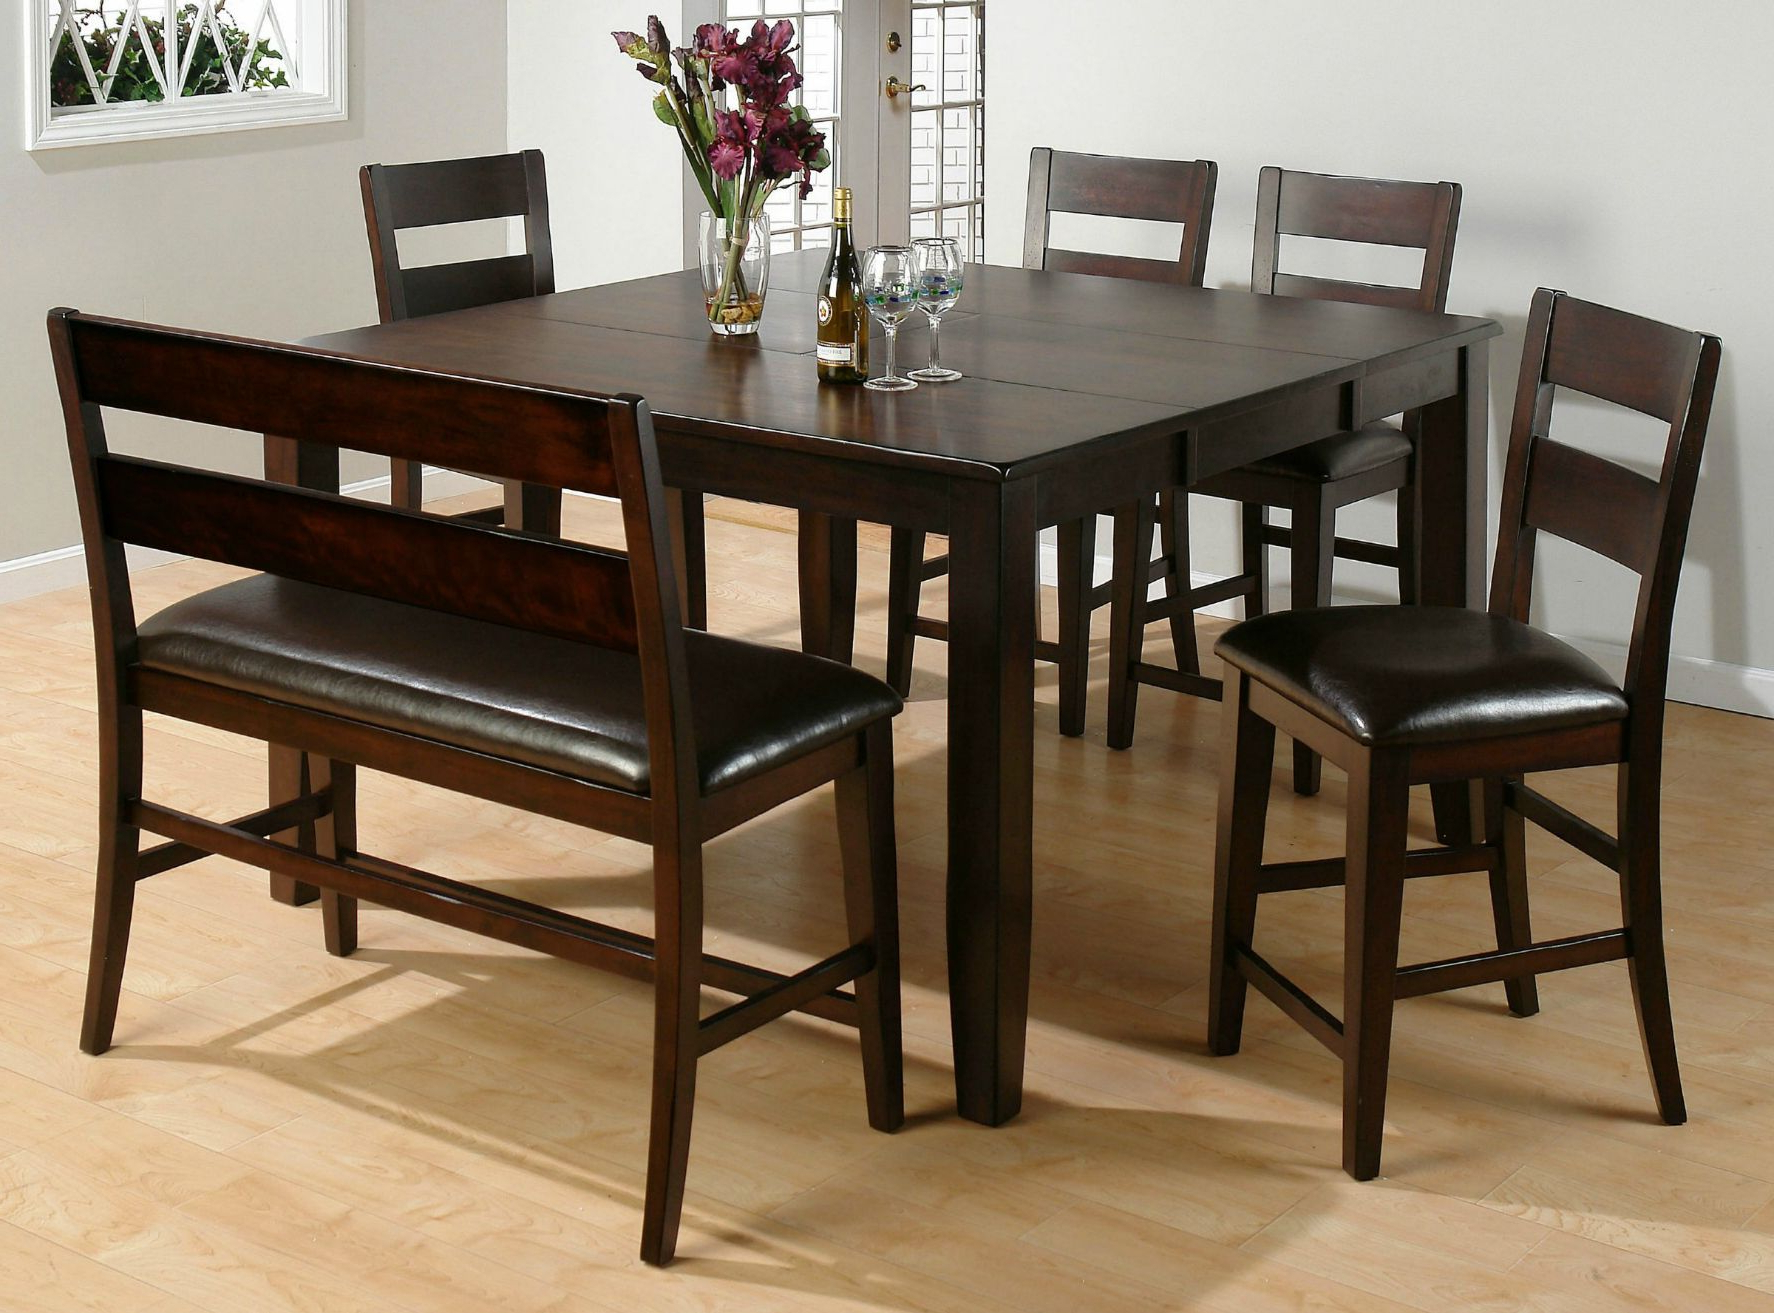 Transitional 4 Seating Double Drop Leaf Casual Dining Tables Regarding Favorite 26 Dining Room Sets (Big And Small) With Bench Seating ( (View 3 of 25)